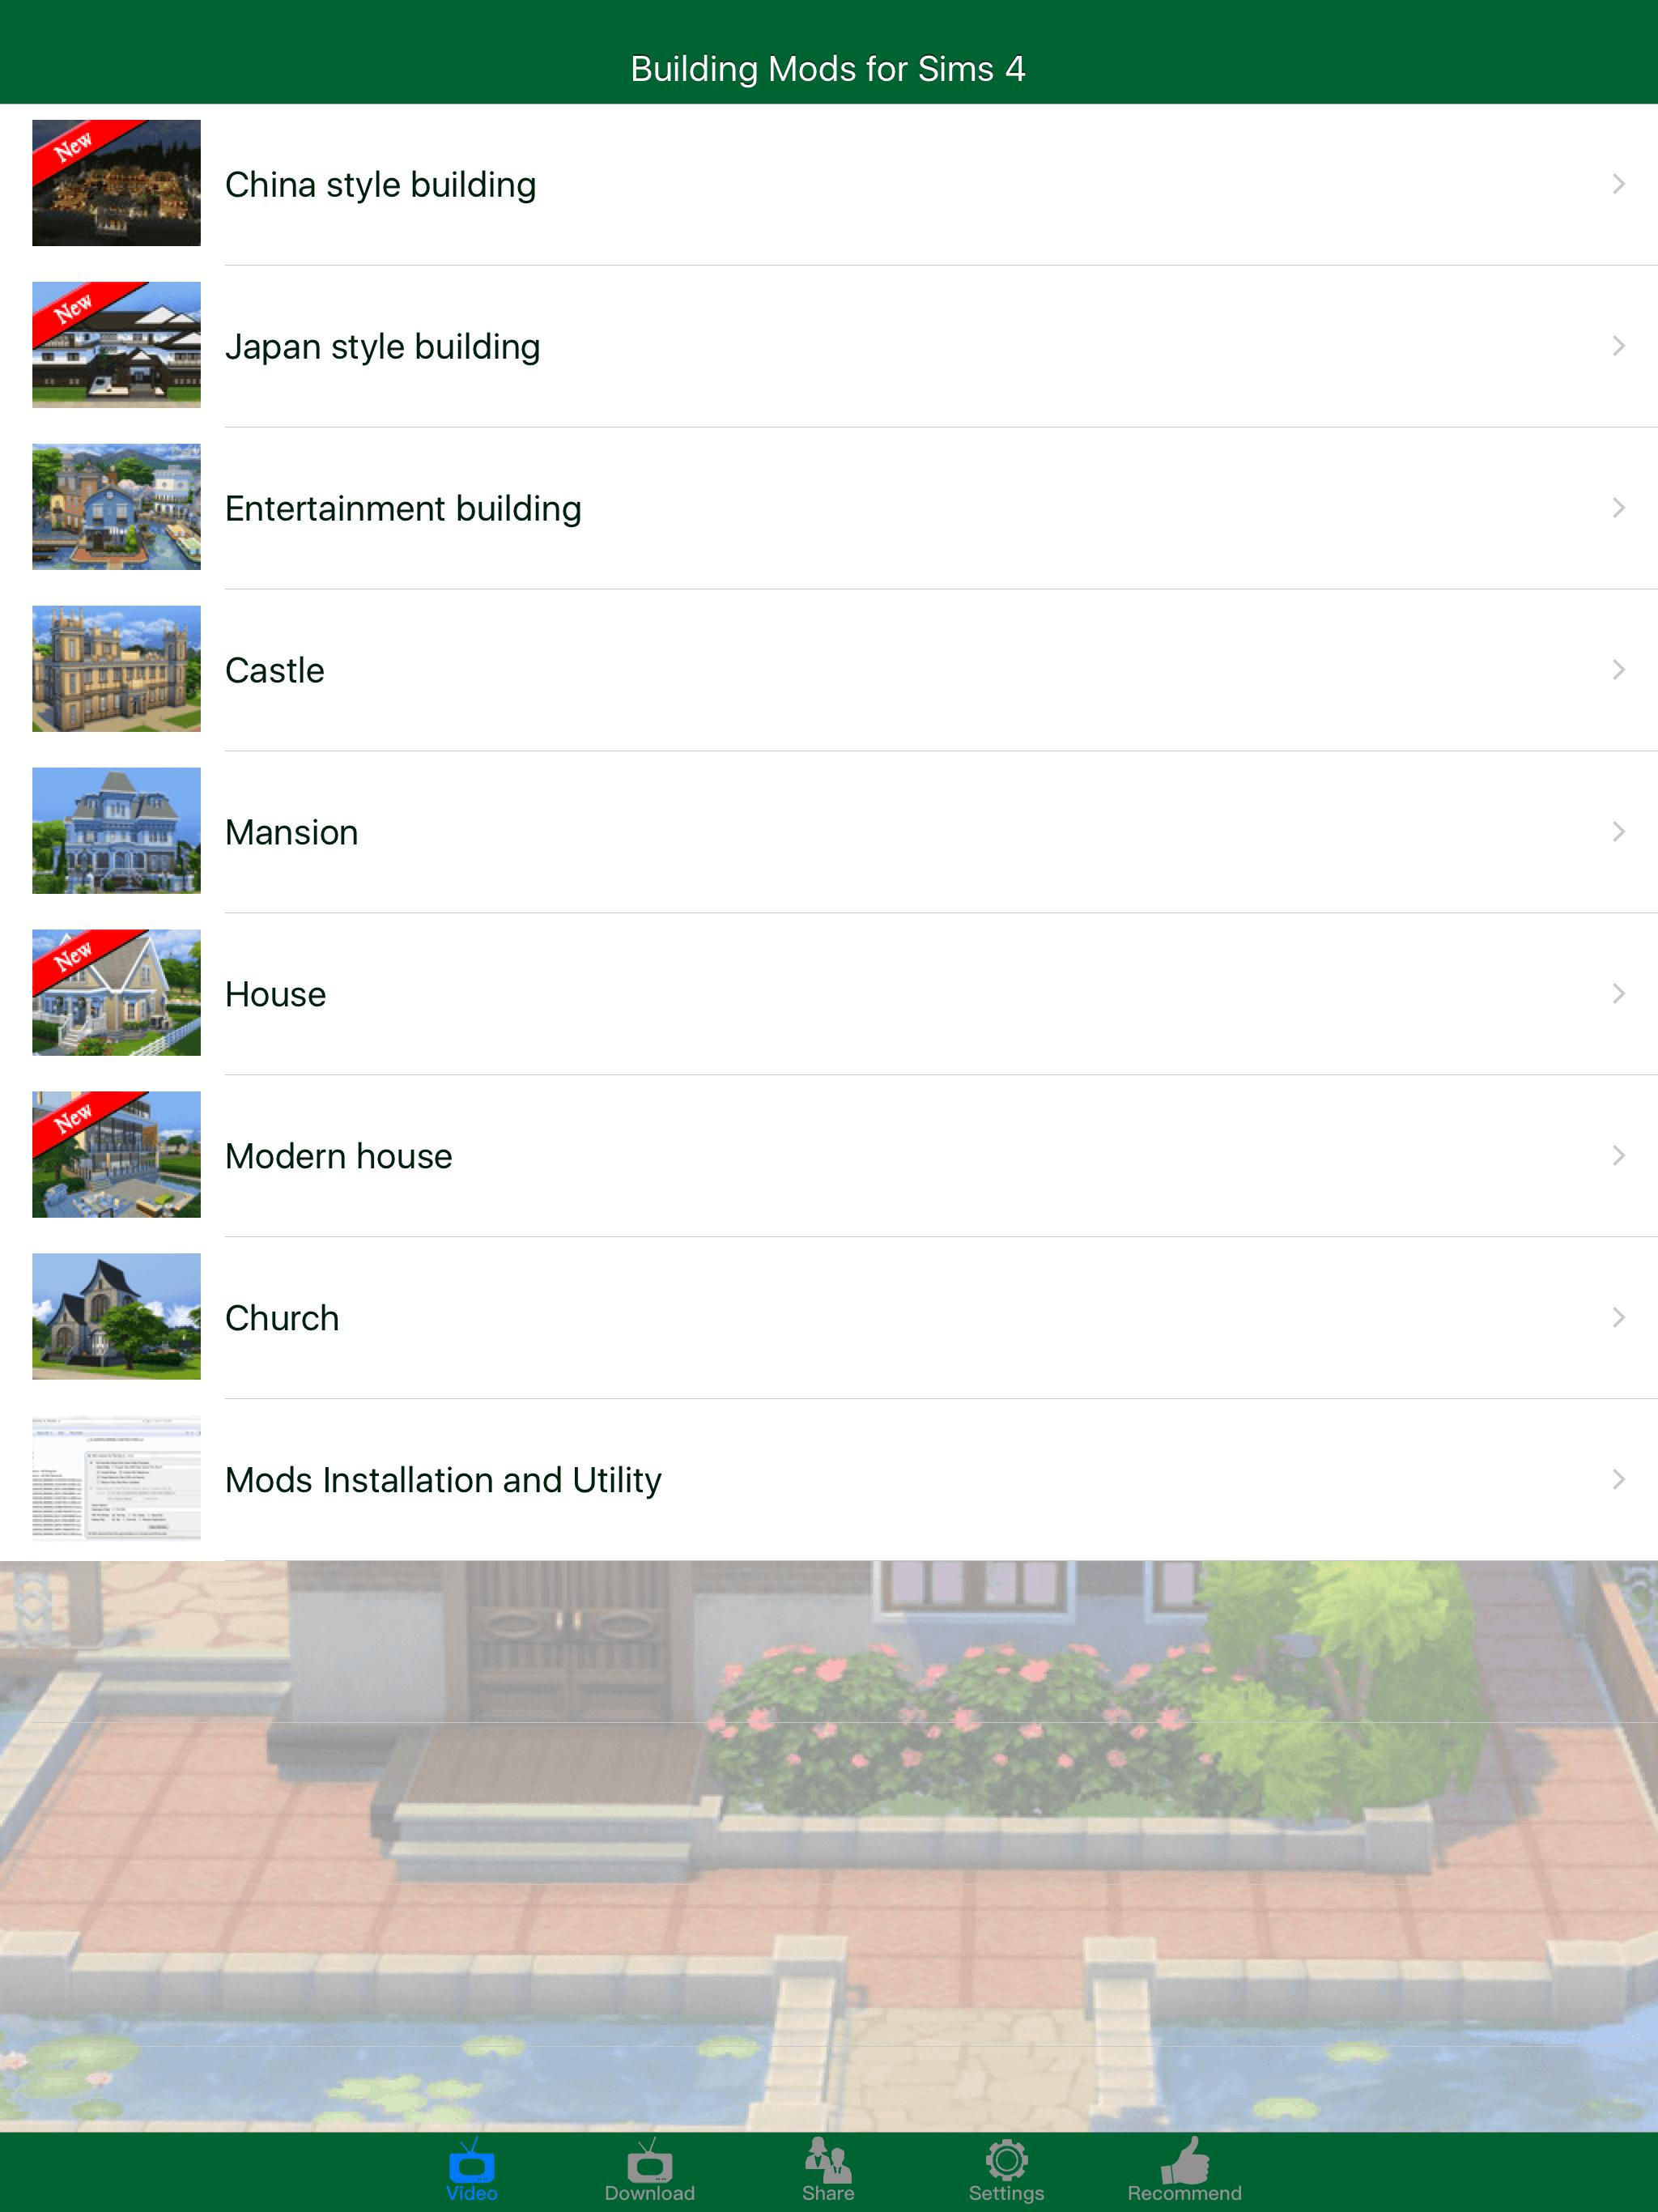 House Building Mods for Sims 4 (PC) for Android - APK Download